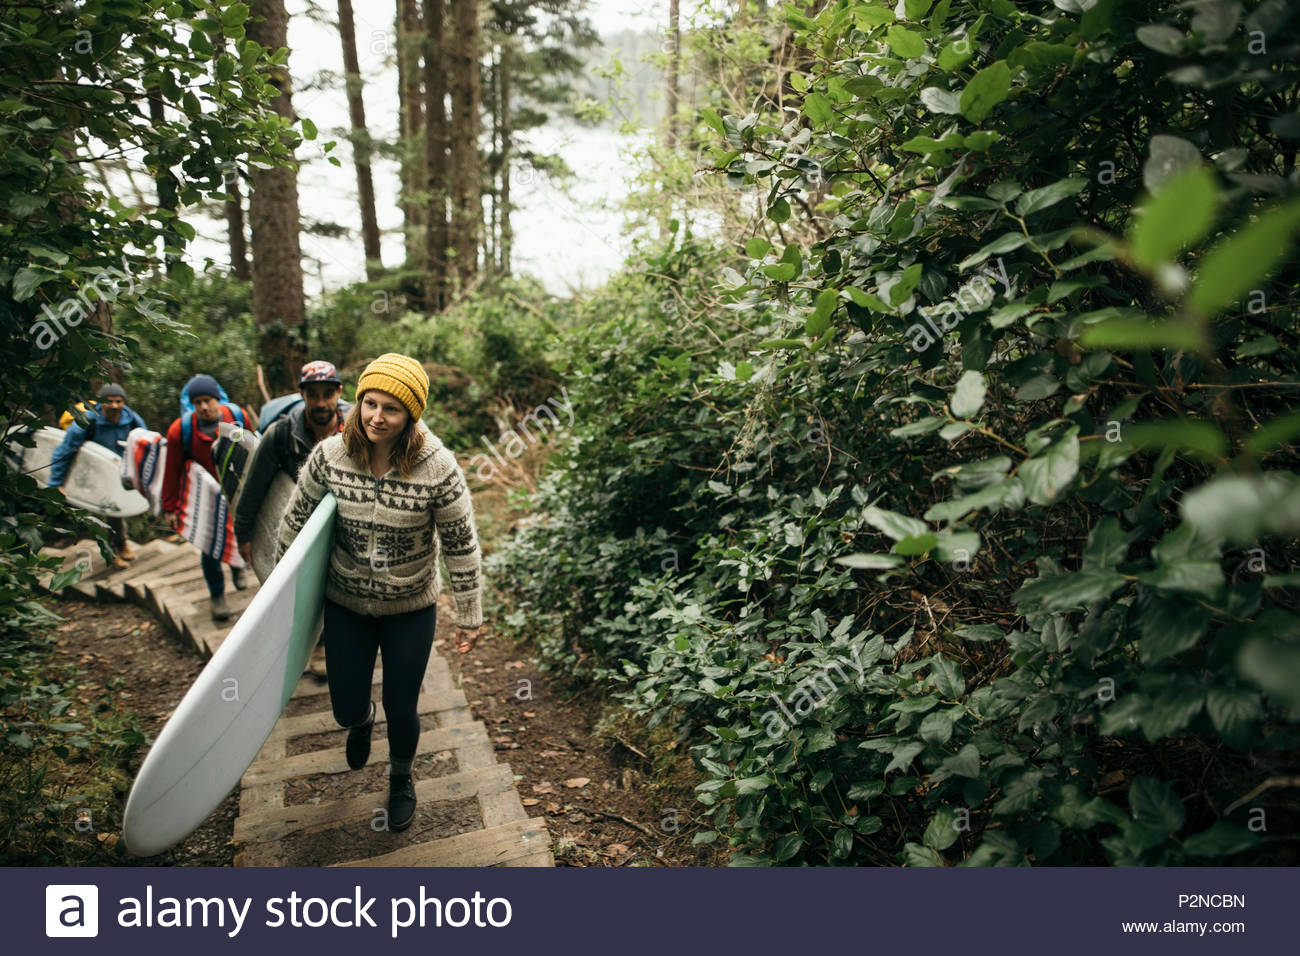 Friends enjoying weekend surfing getaway, carrying surfboards up stairs in woods - Stock Image